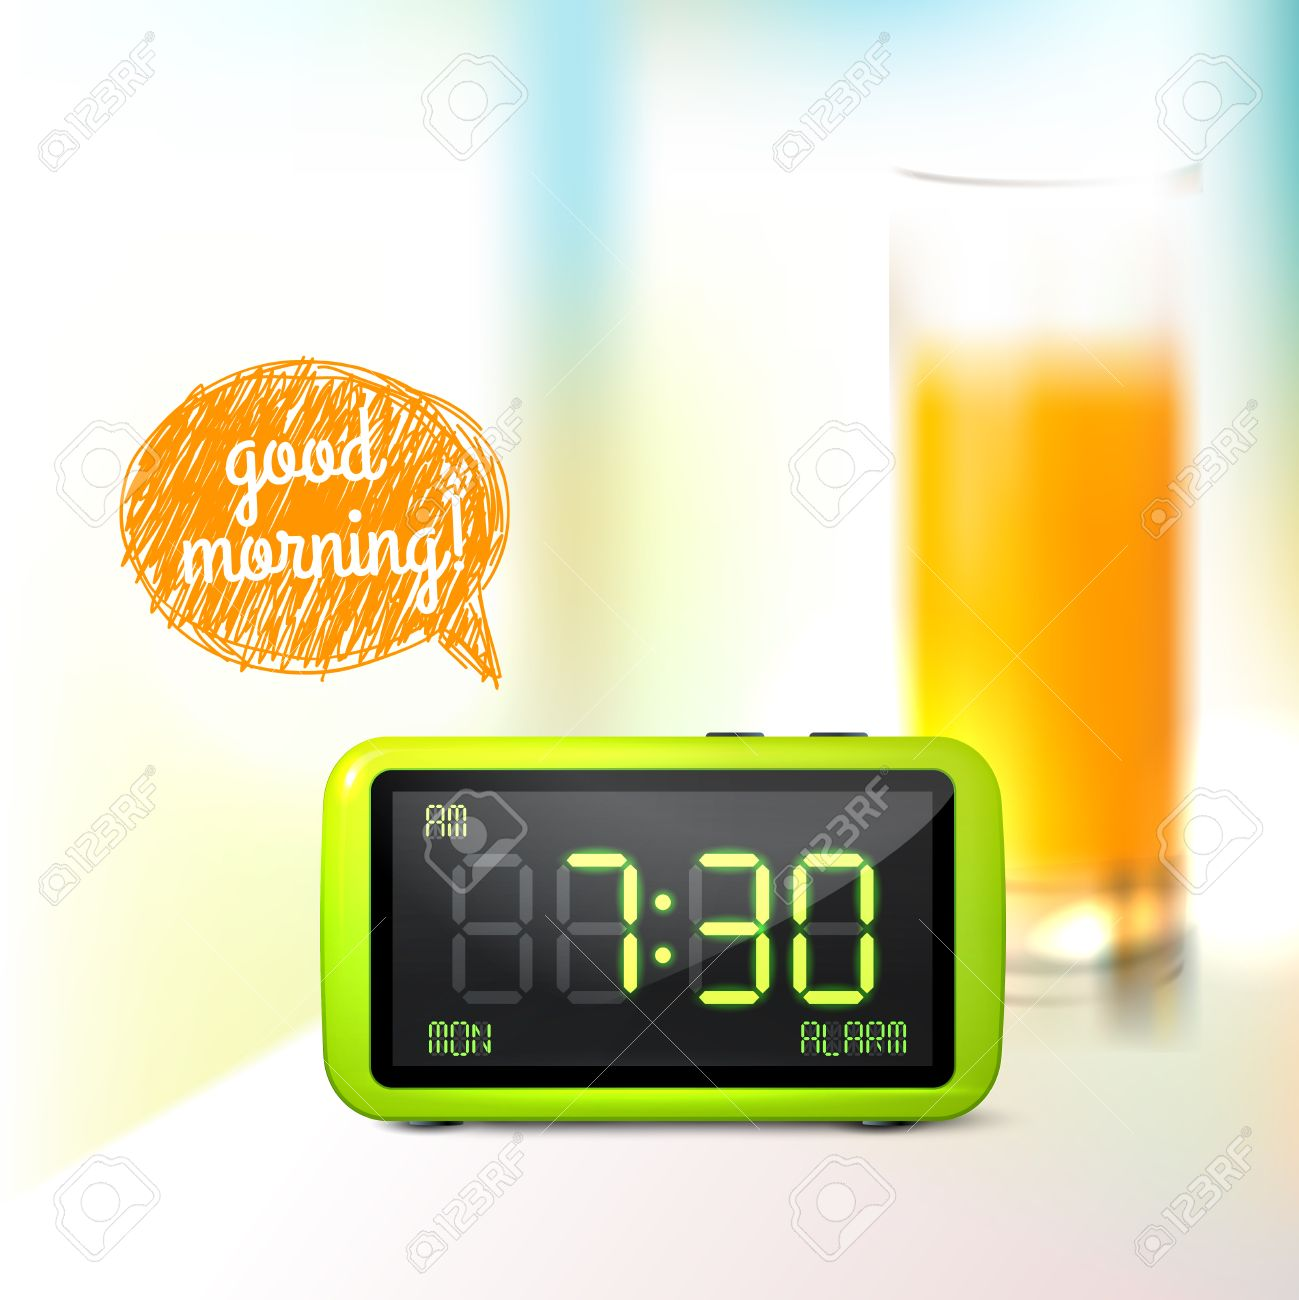 Realistic digital alarm clock with lcd display and glass of orange juice good morning background vector illustration Stock Vector - 28799577